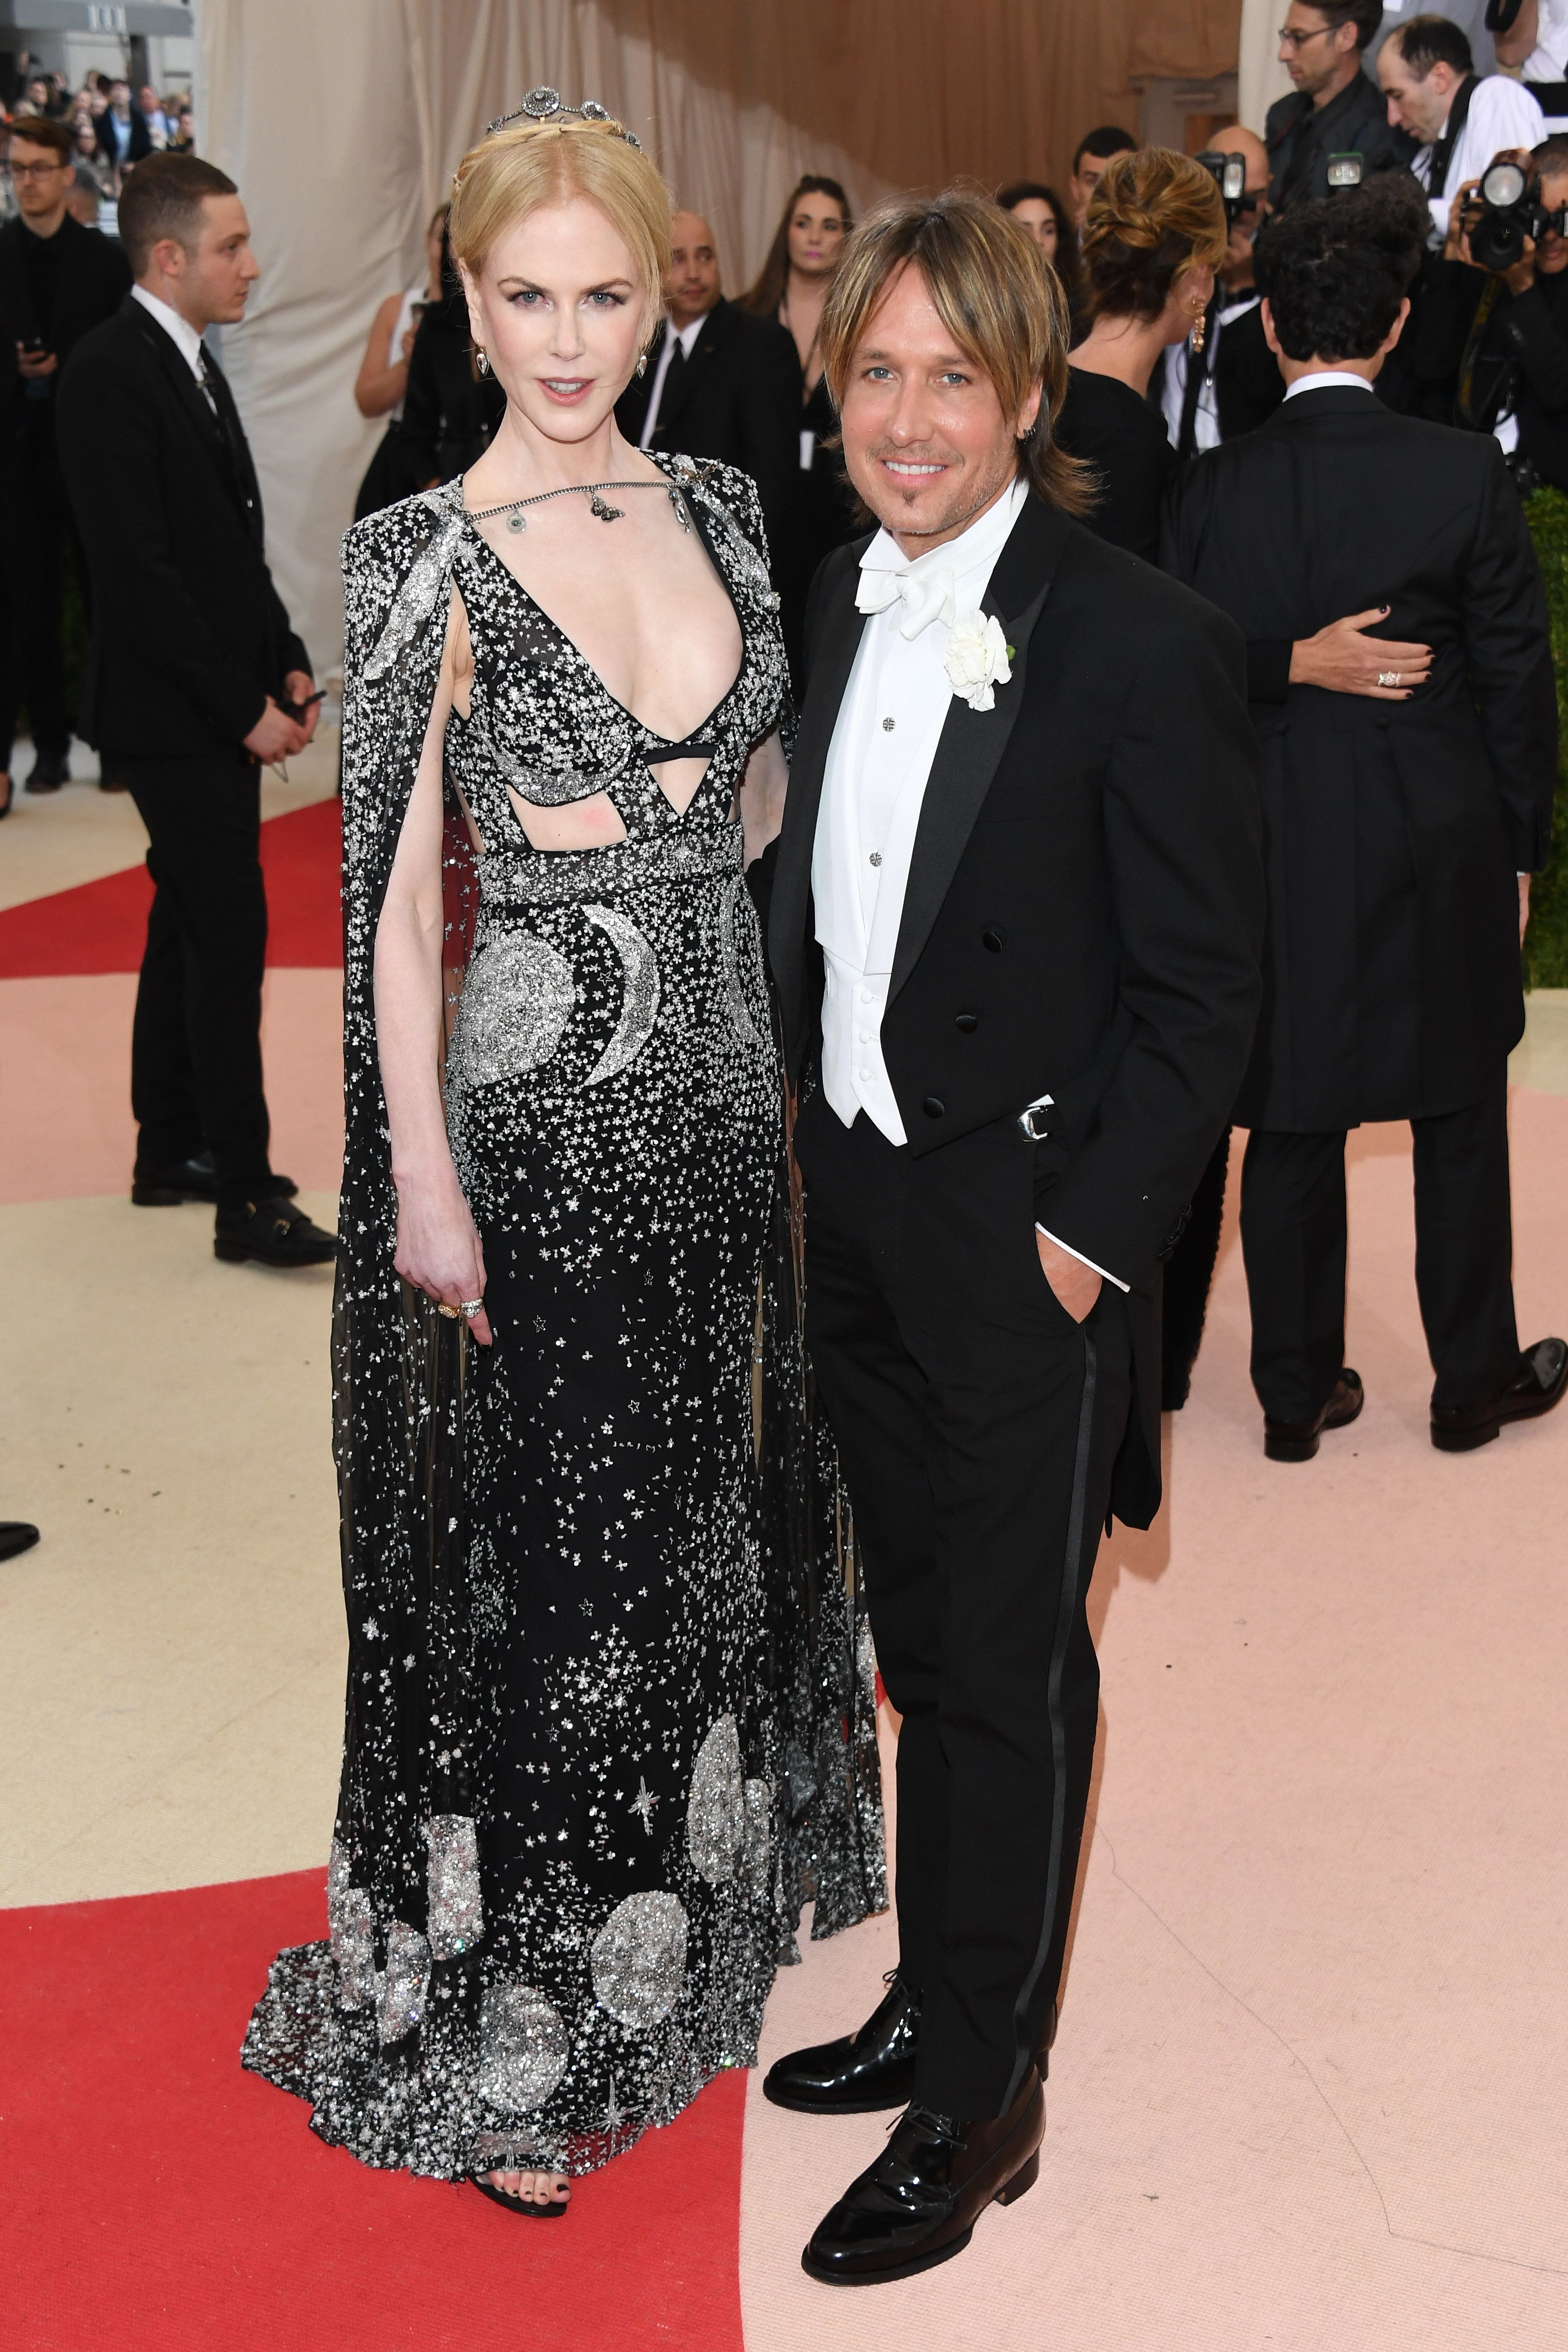 NEW YORK, NY - MAY 02:  Nicole Kidman and Keith Urban attend the 'Manus x Machina: Fashion In An Age Of Technology' Costume Institute Gala at the Metropolitan Museum on May 02, 2016 in New York, New York.  (Photo by Venturelli/FilmMagic)